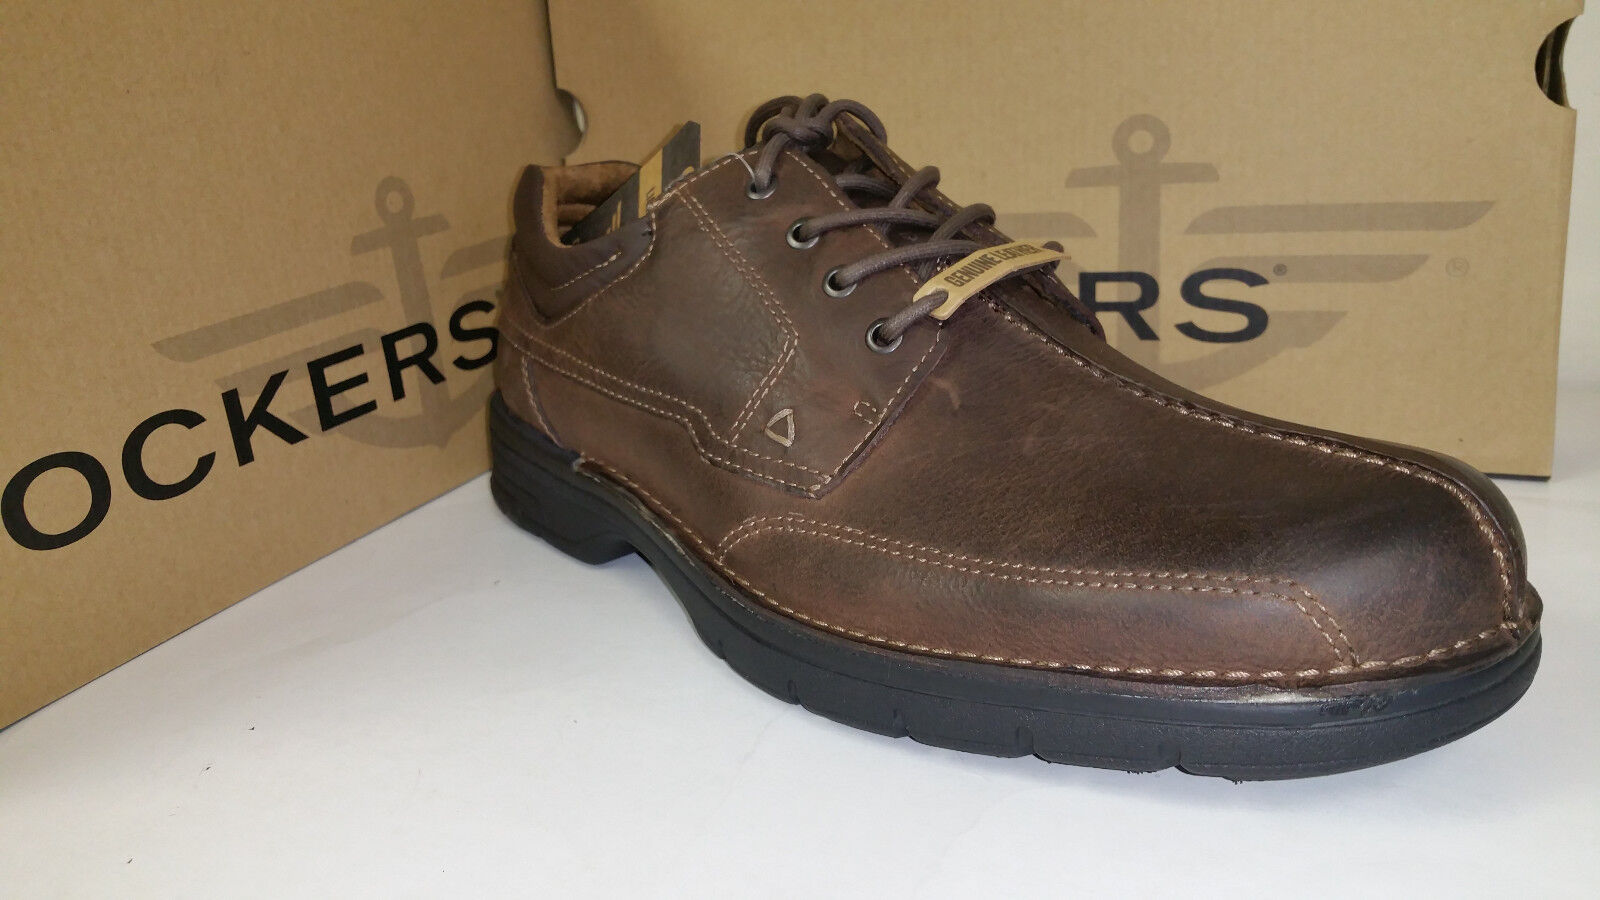 Dockers Steele Light Weight Chocolate Pelle Casual Shoes size 7-12